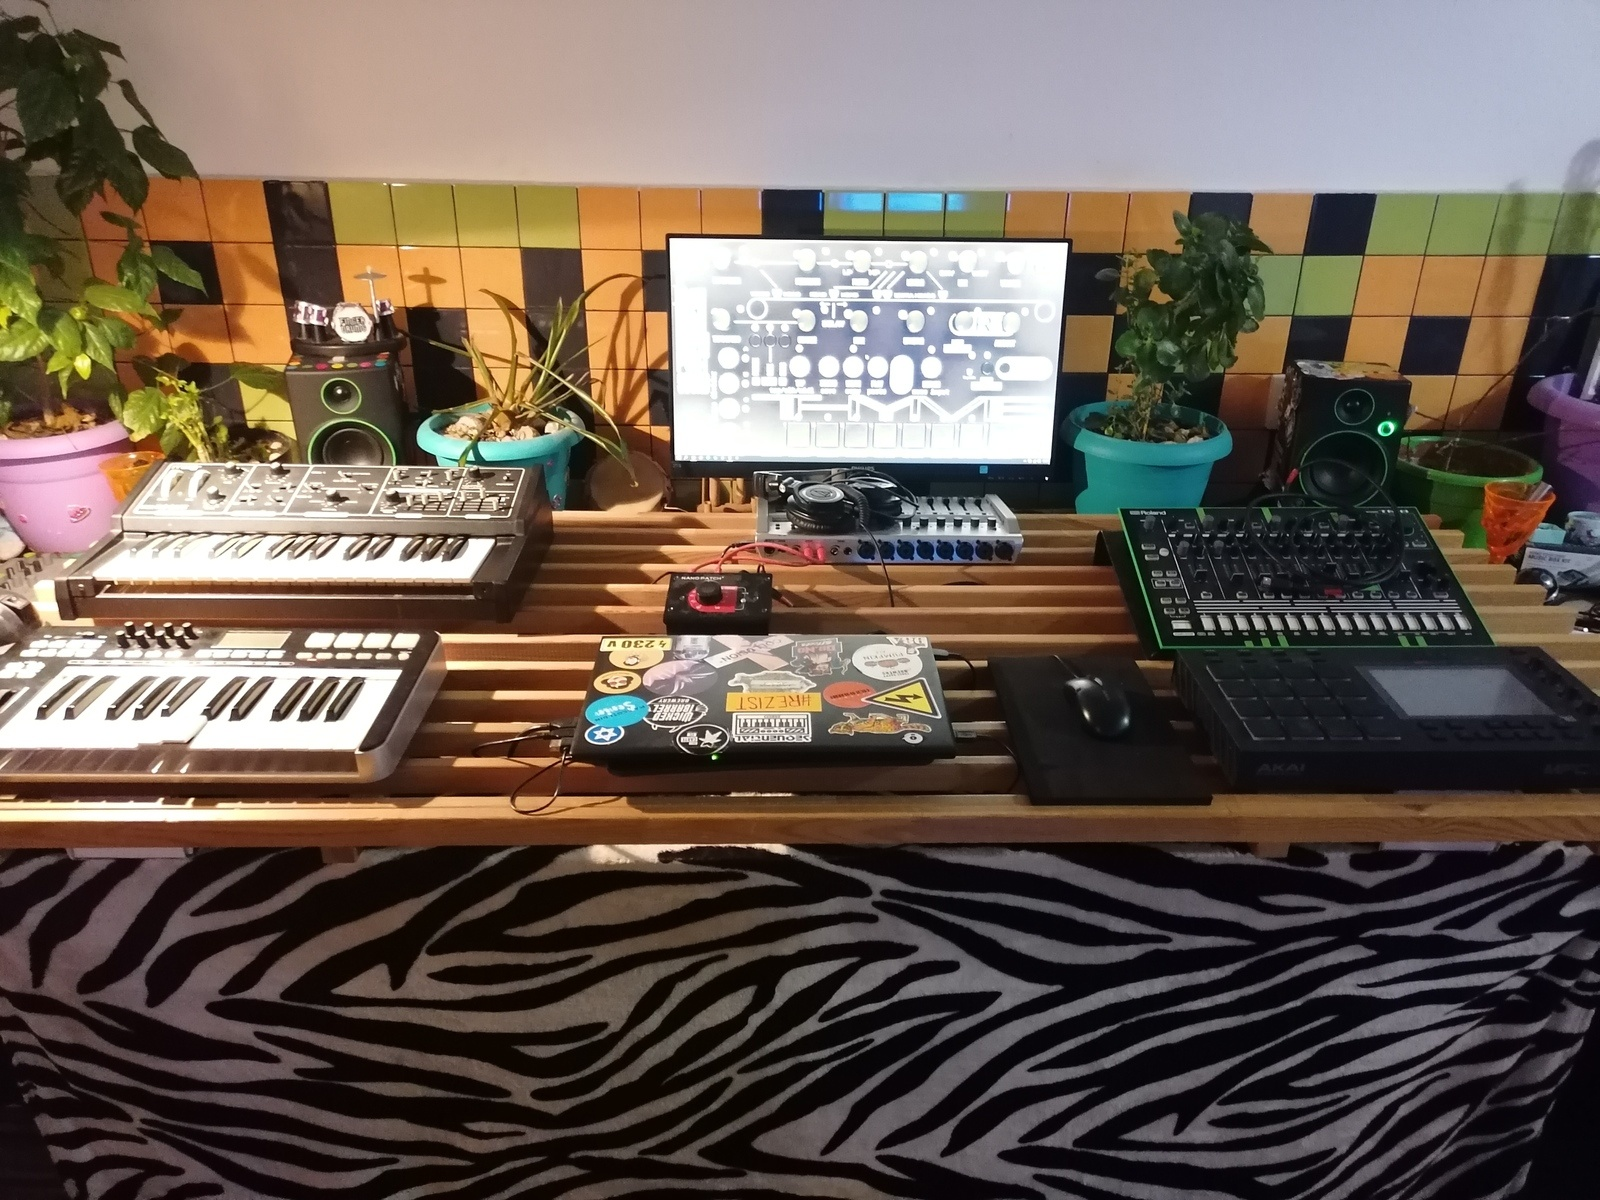 Photo of Moog Rogue and more gear